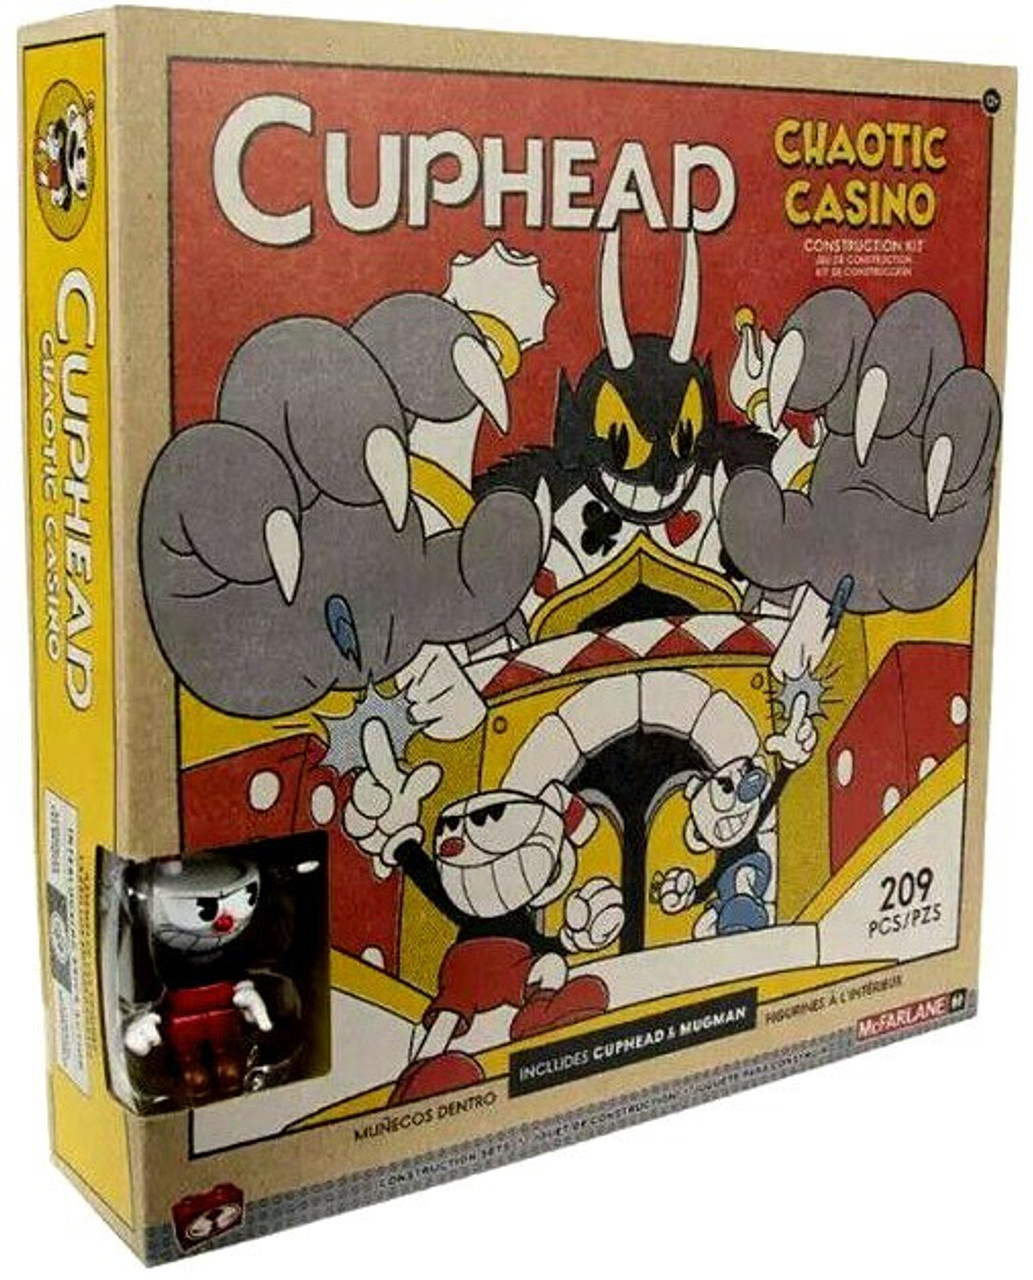 39aa3077a1 McFarlane Toys Cuphead Chaotic Casino Large Construction Set (Pre-Order  ships July)